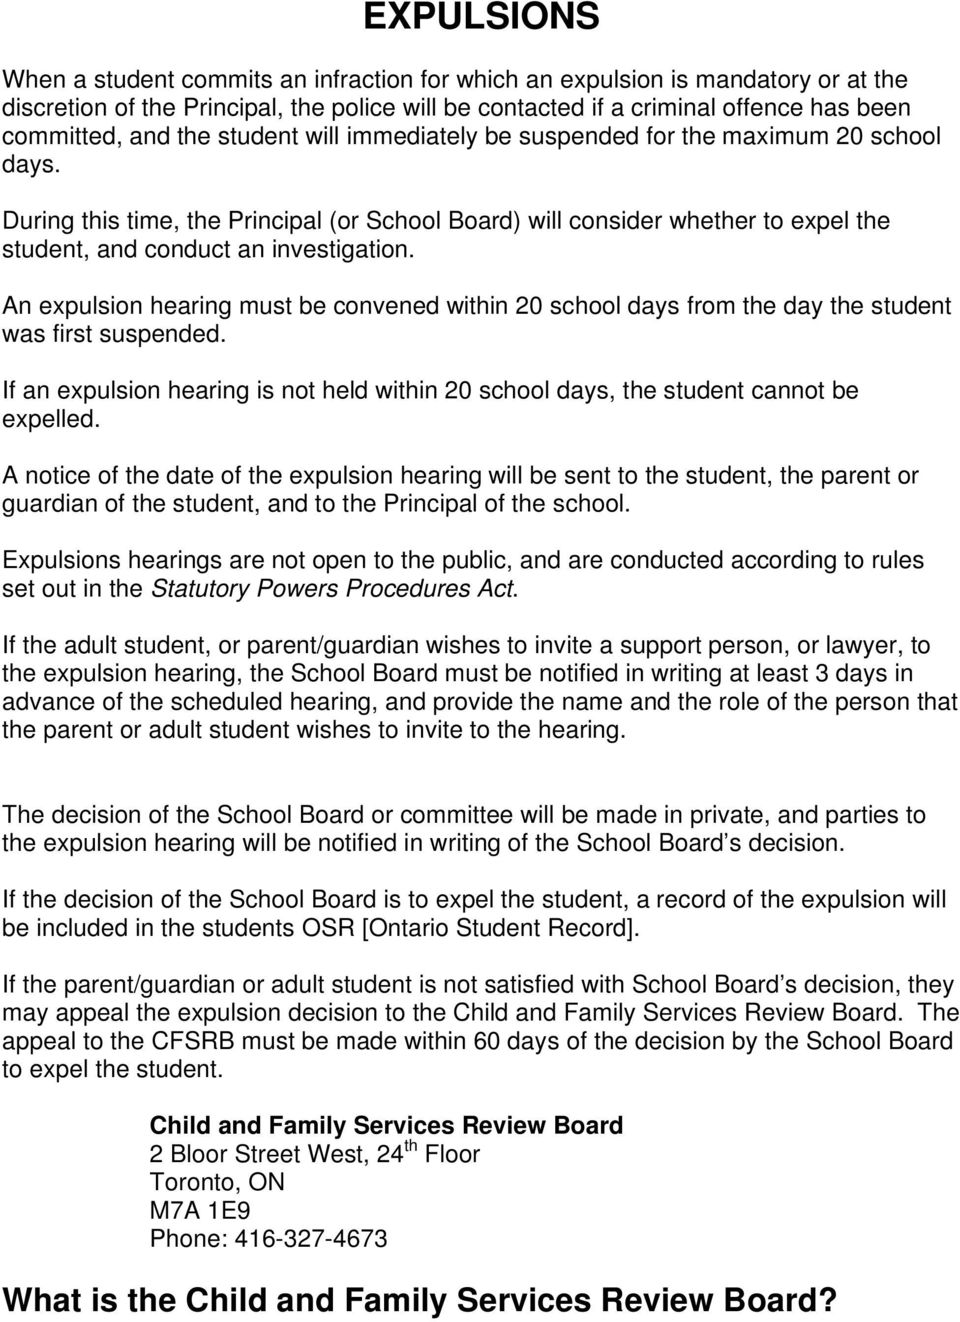 An expulsion hearing must be convened within 20 school days from the day the student was first suspended. If an expulsion hearing is not held within 20 school days, the student cannot be expelled.